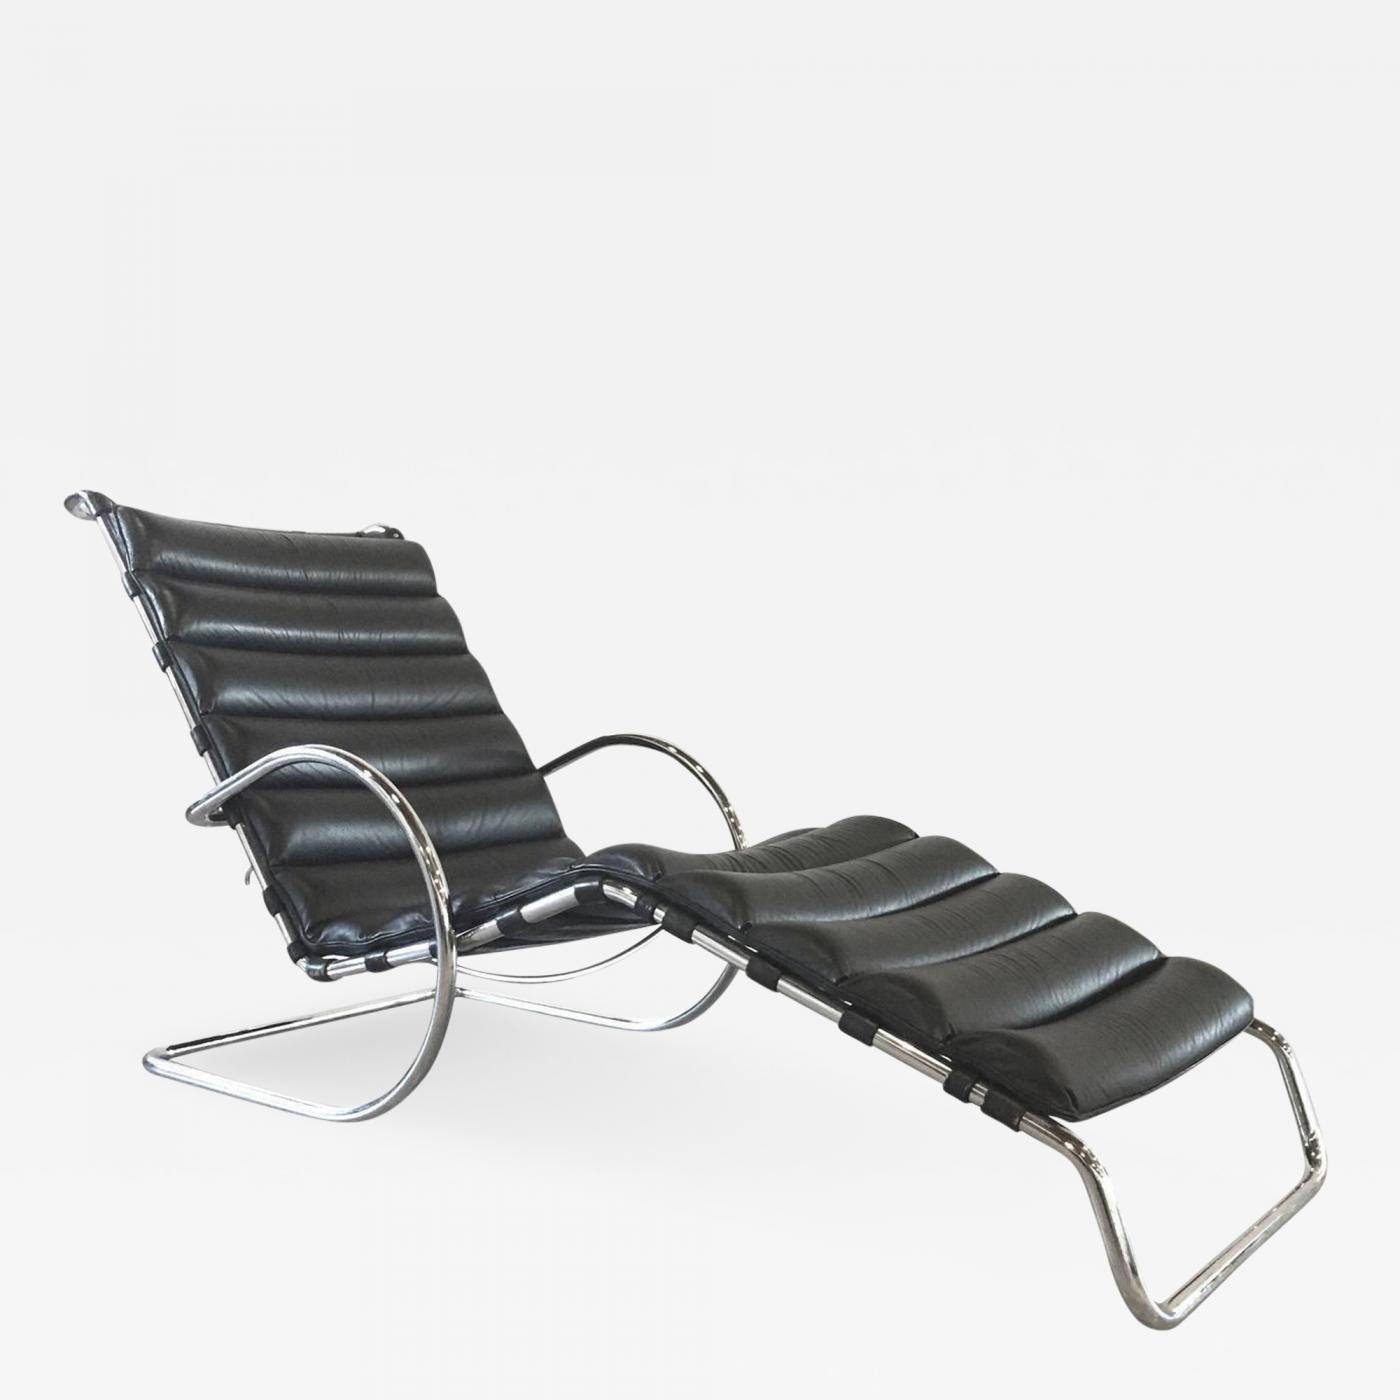 Black leather chaise longue le corbusier furniture for Black leather chaise longue